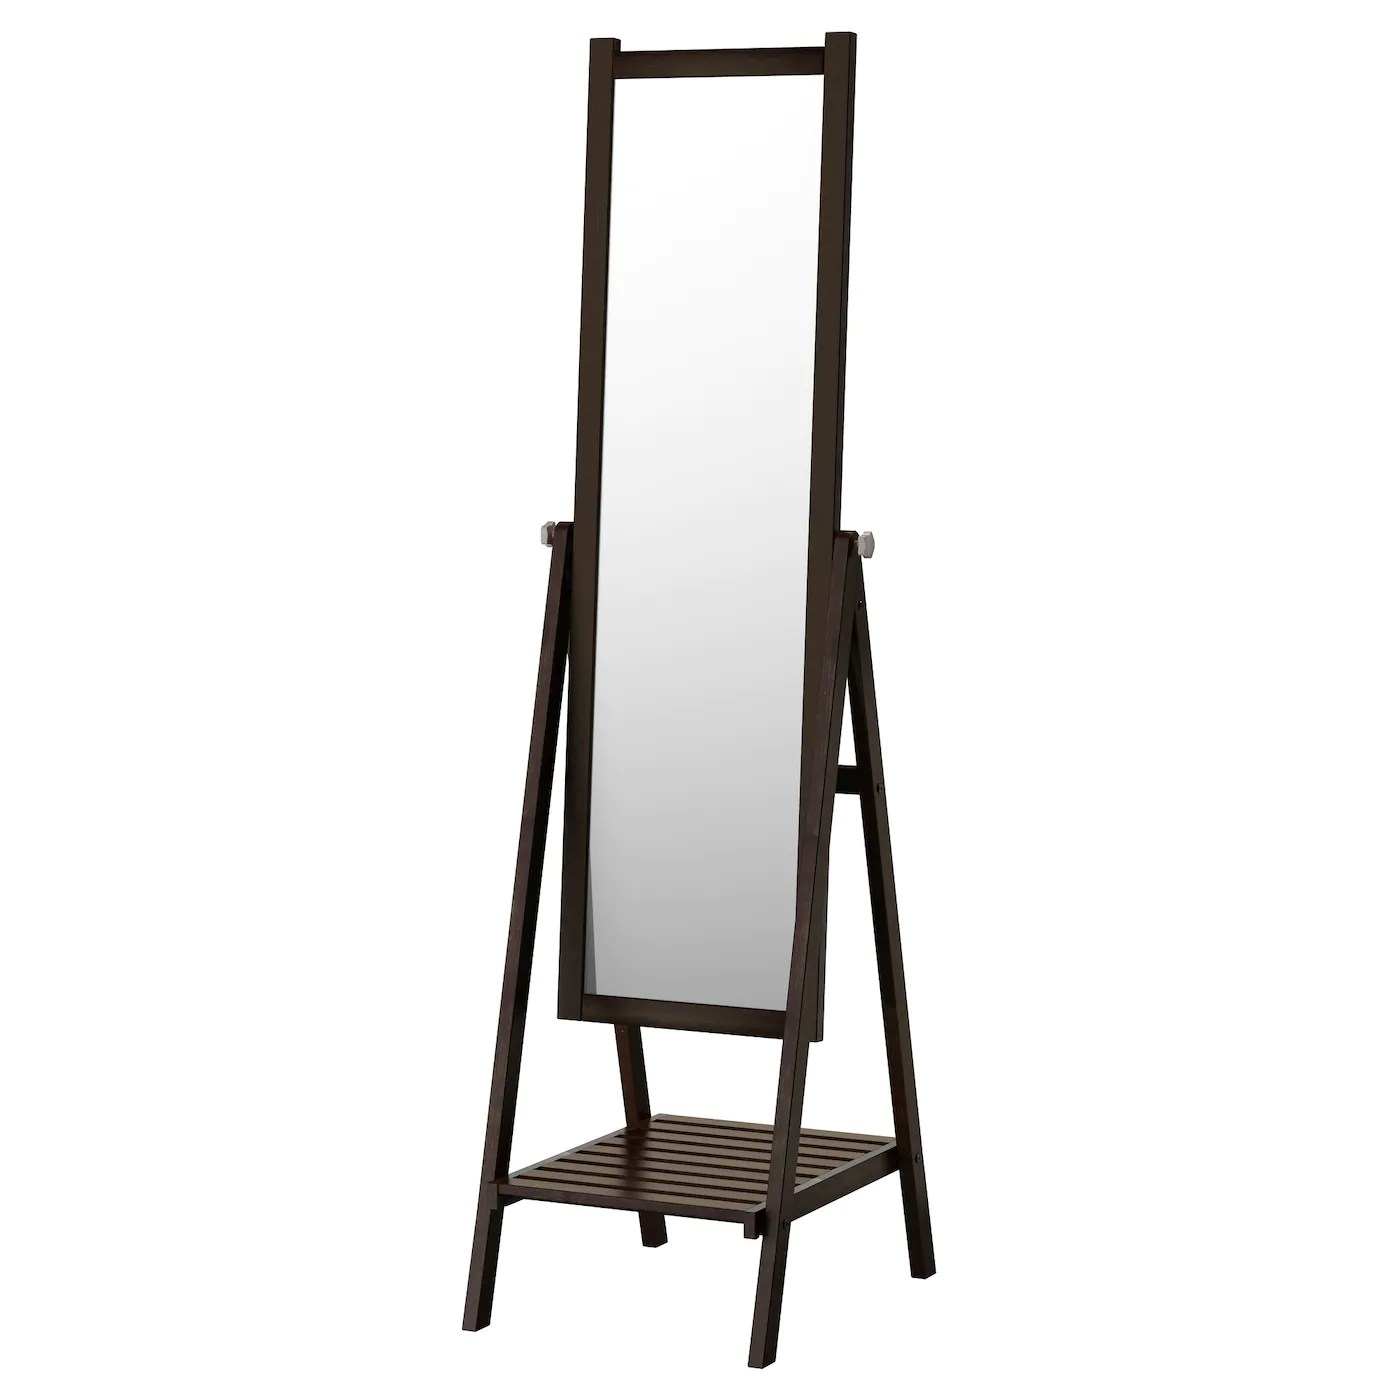 Mirrors Ikea Isfjorden Standing Mirror Black Brown Stain 47x182 Cm Ikea